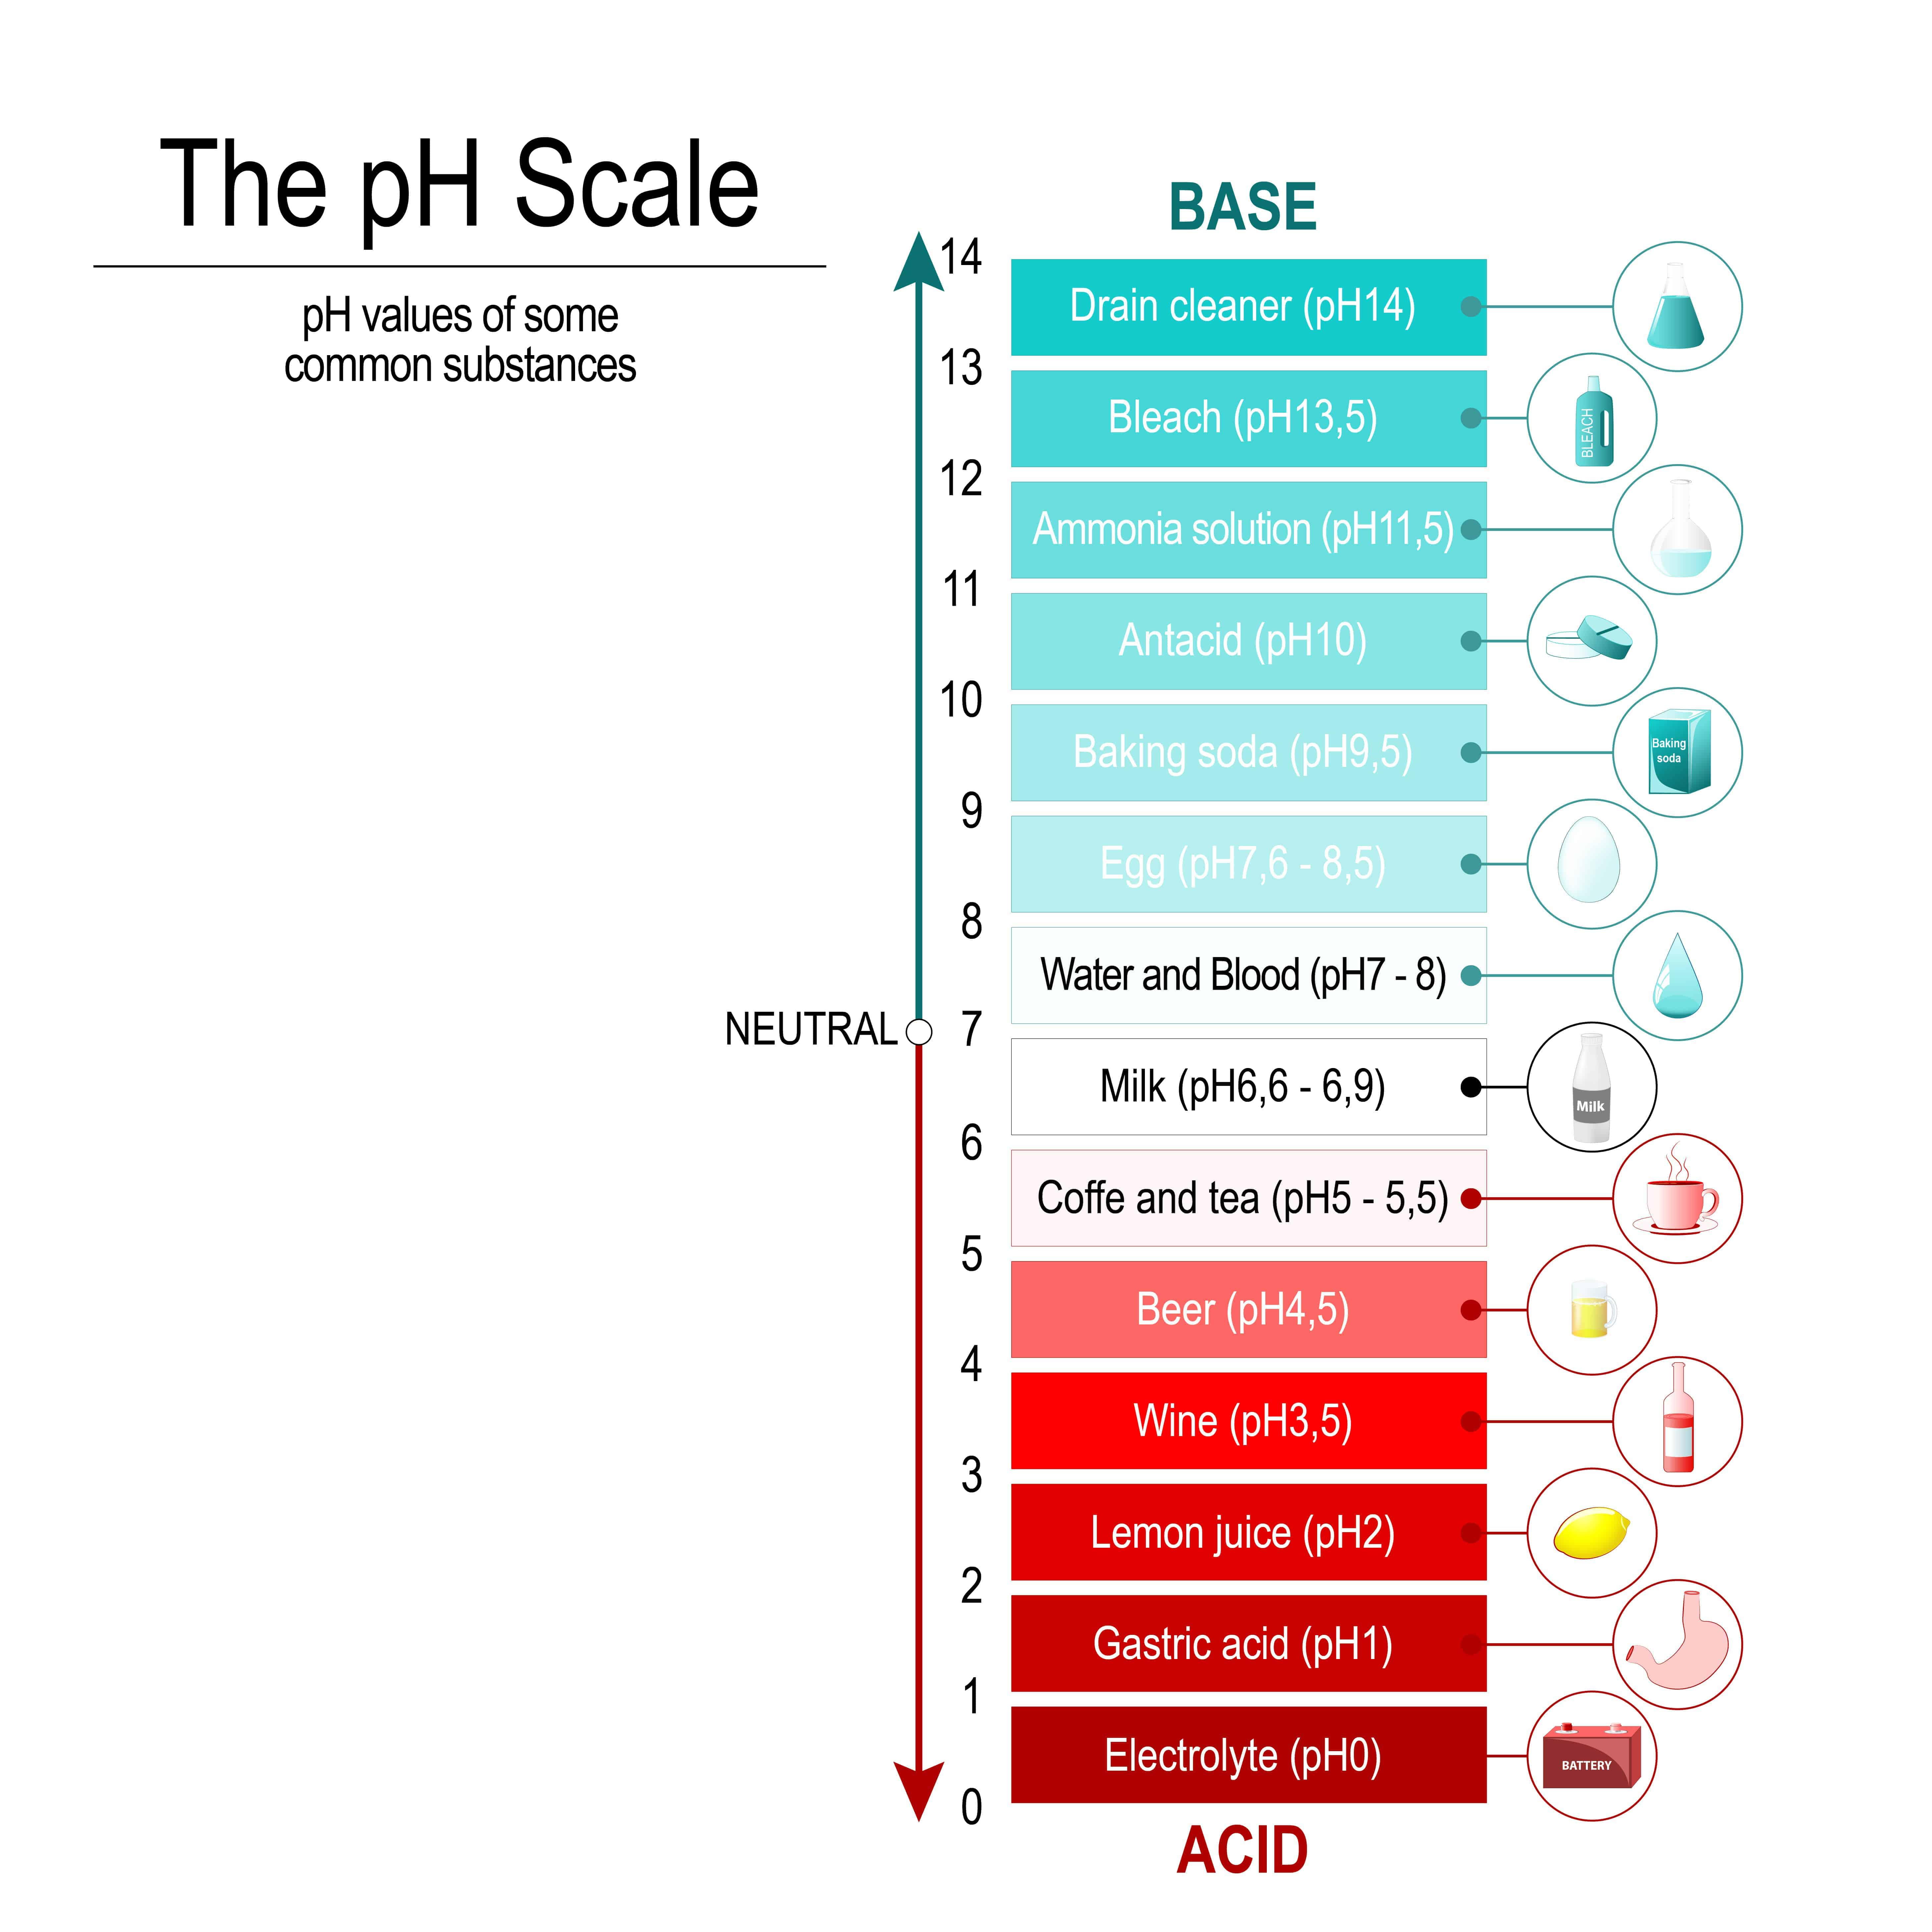 https://www.shutterstock.com/image-vector/ph-scale-values-some-substances-vector-1081704128